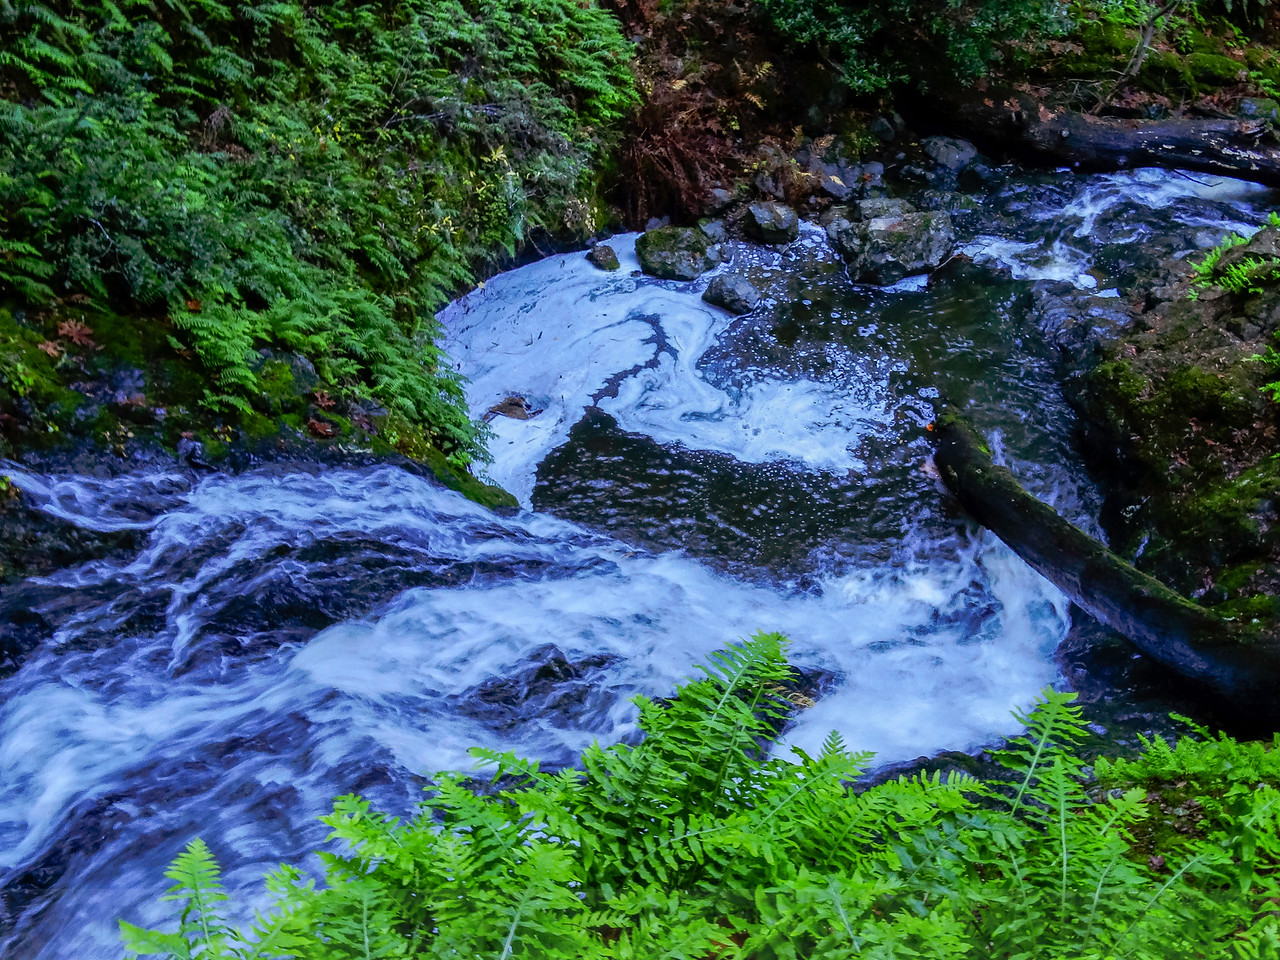 The brink of Midway Falls, Cataract Creek